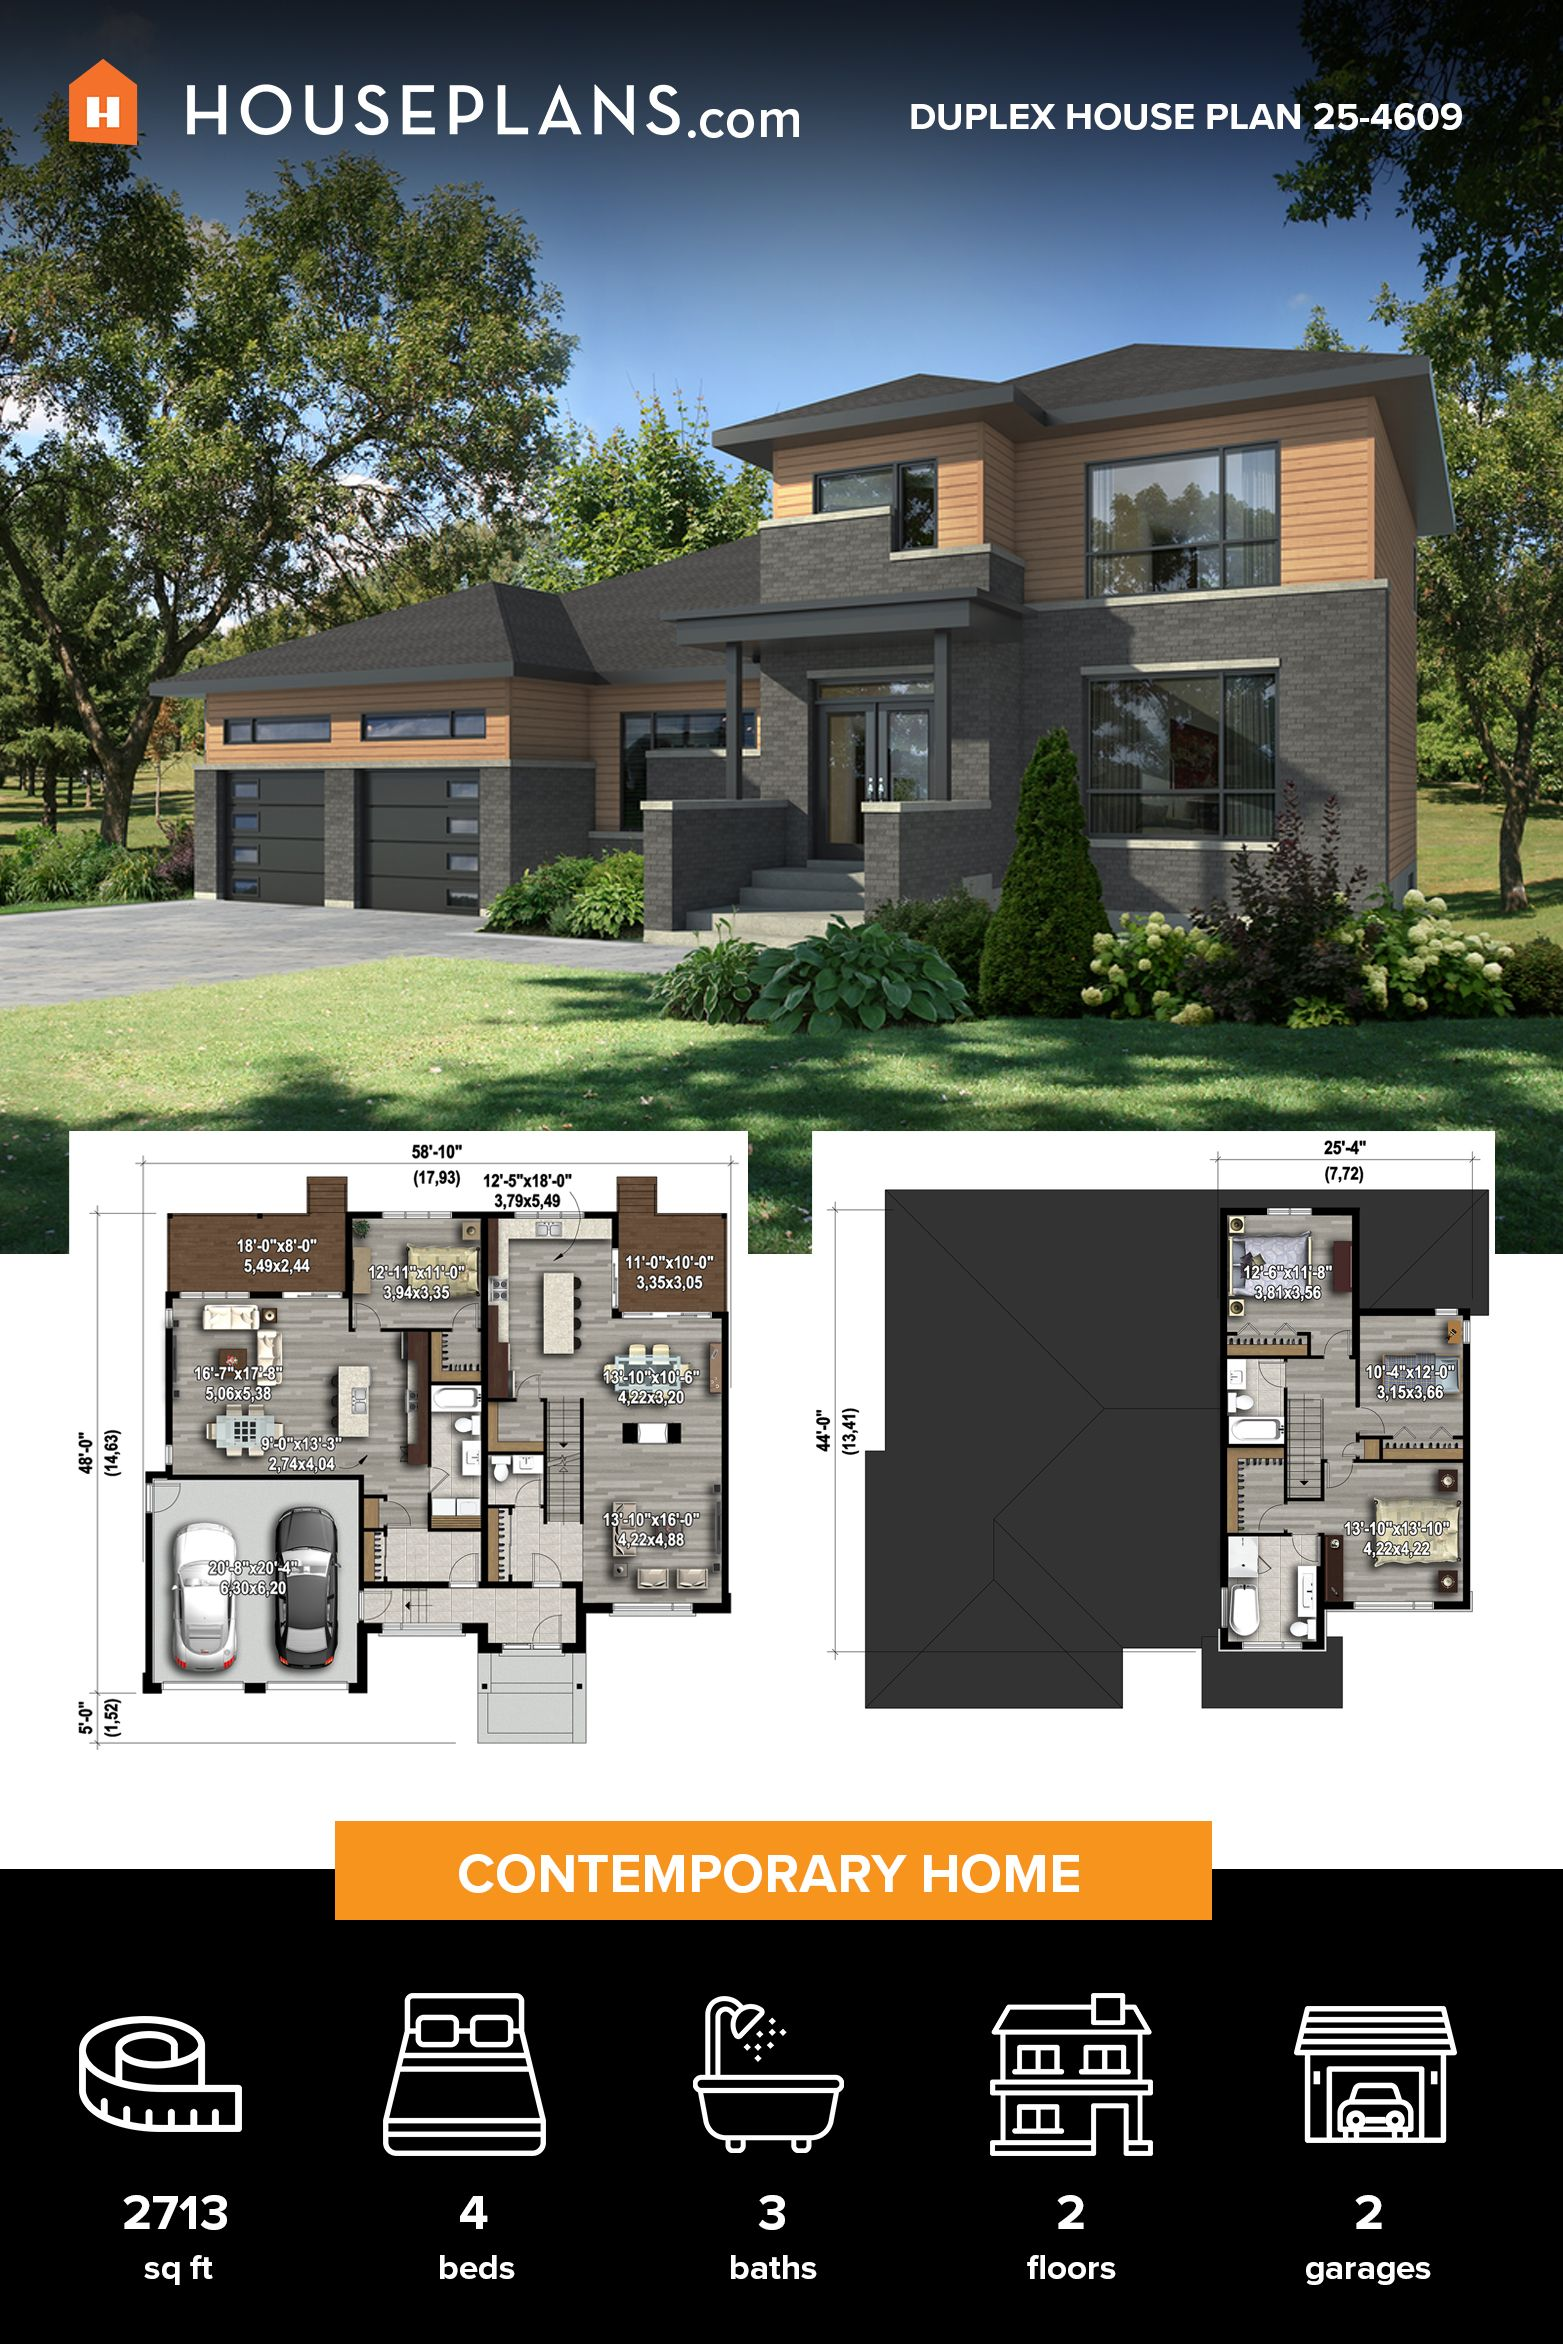 Contemporary Style House Plan 4 Beds 3 Baths 2713 Sq Ft Plan 25 4609 In 2020 House Plans Modern House Plans Modern House Design